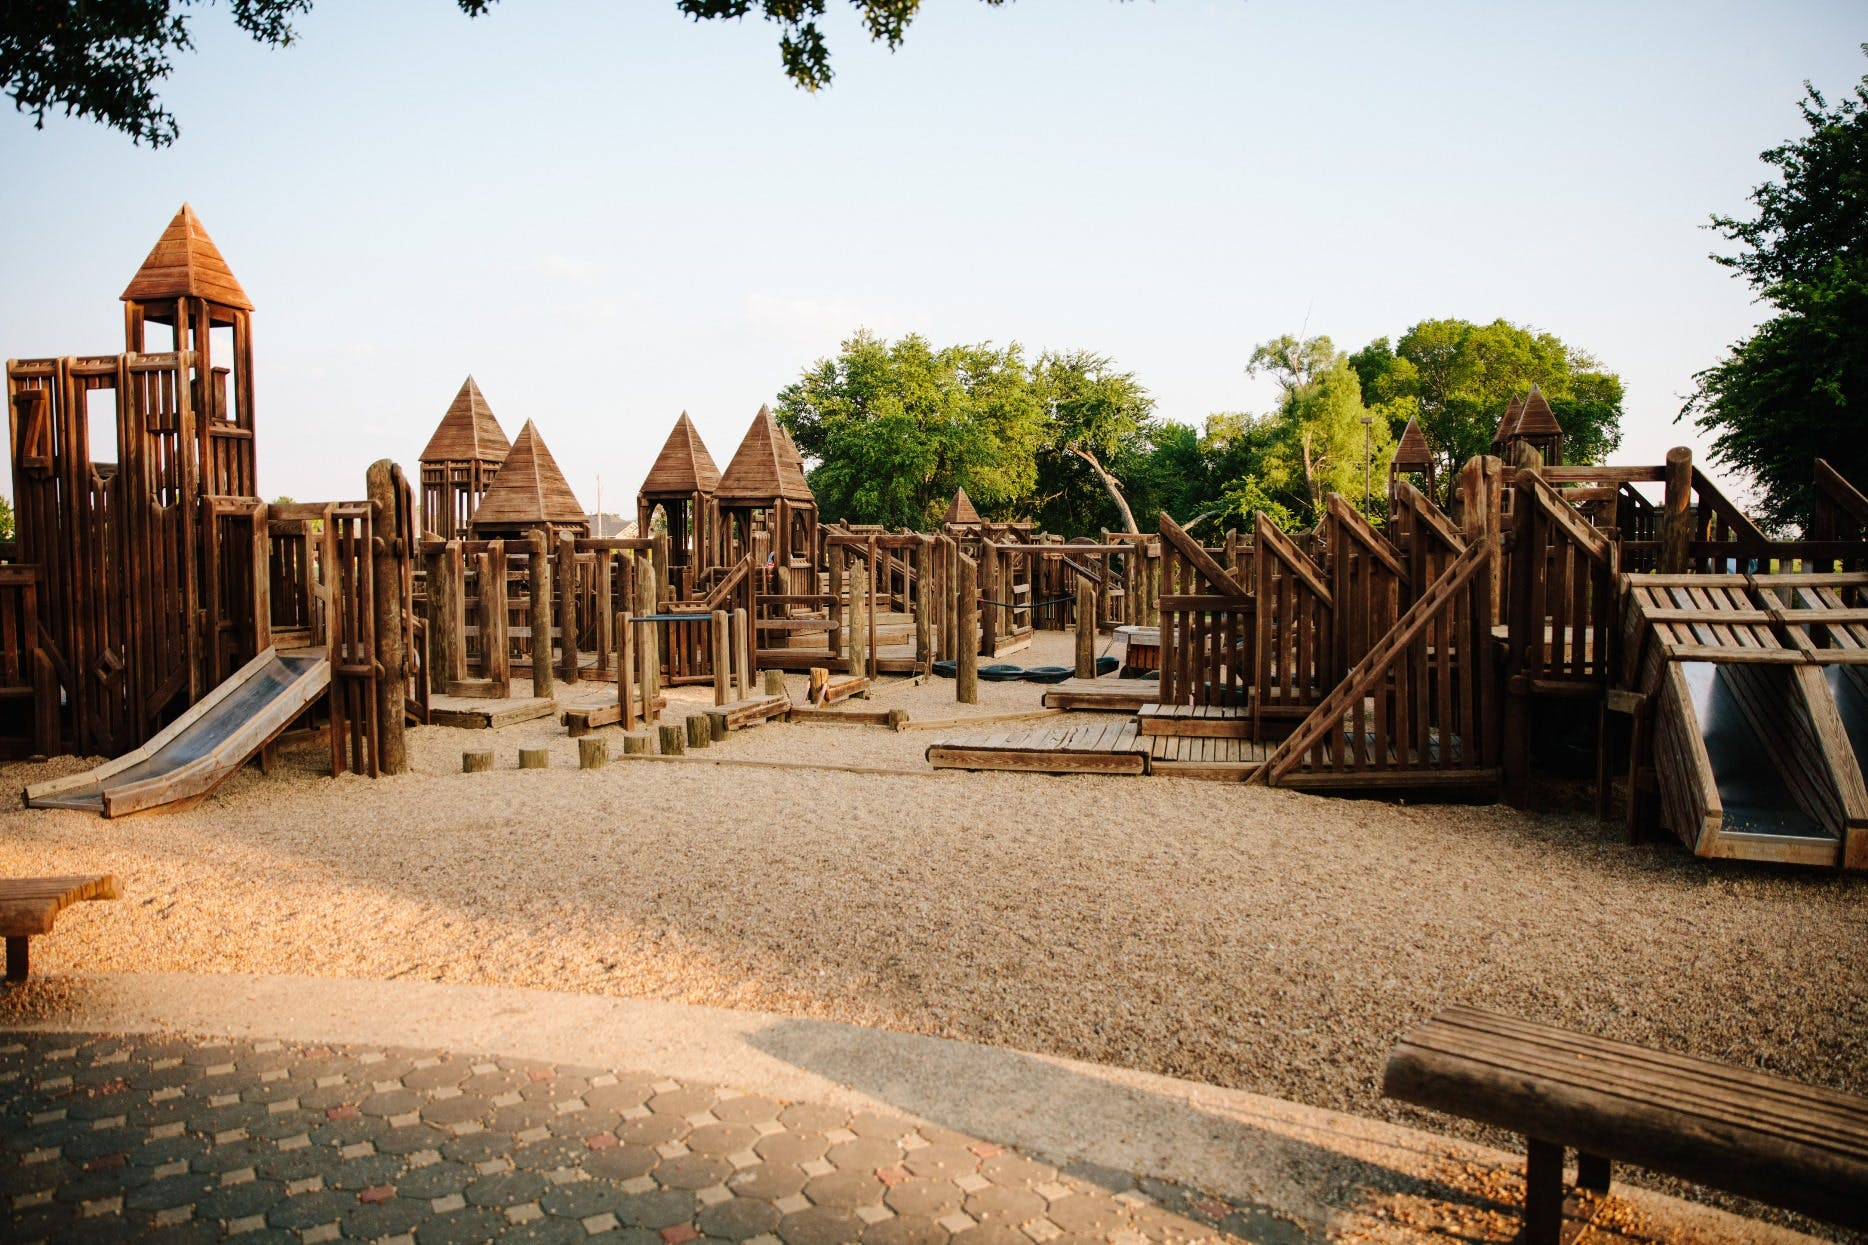 Original wooden play structure, located at Virginia Weaver Park.